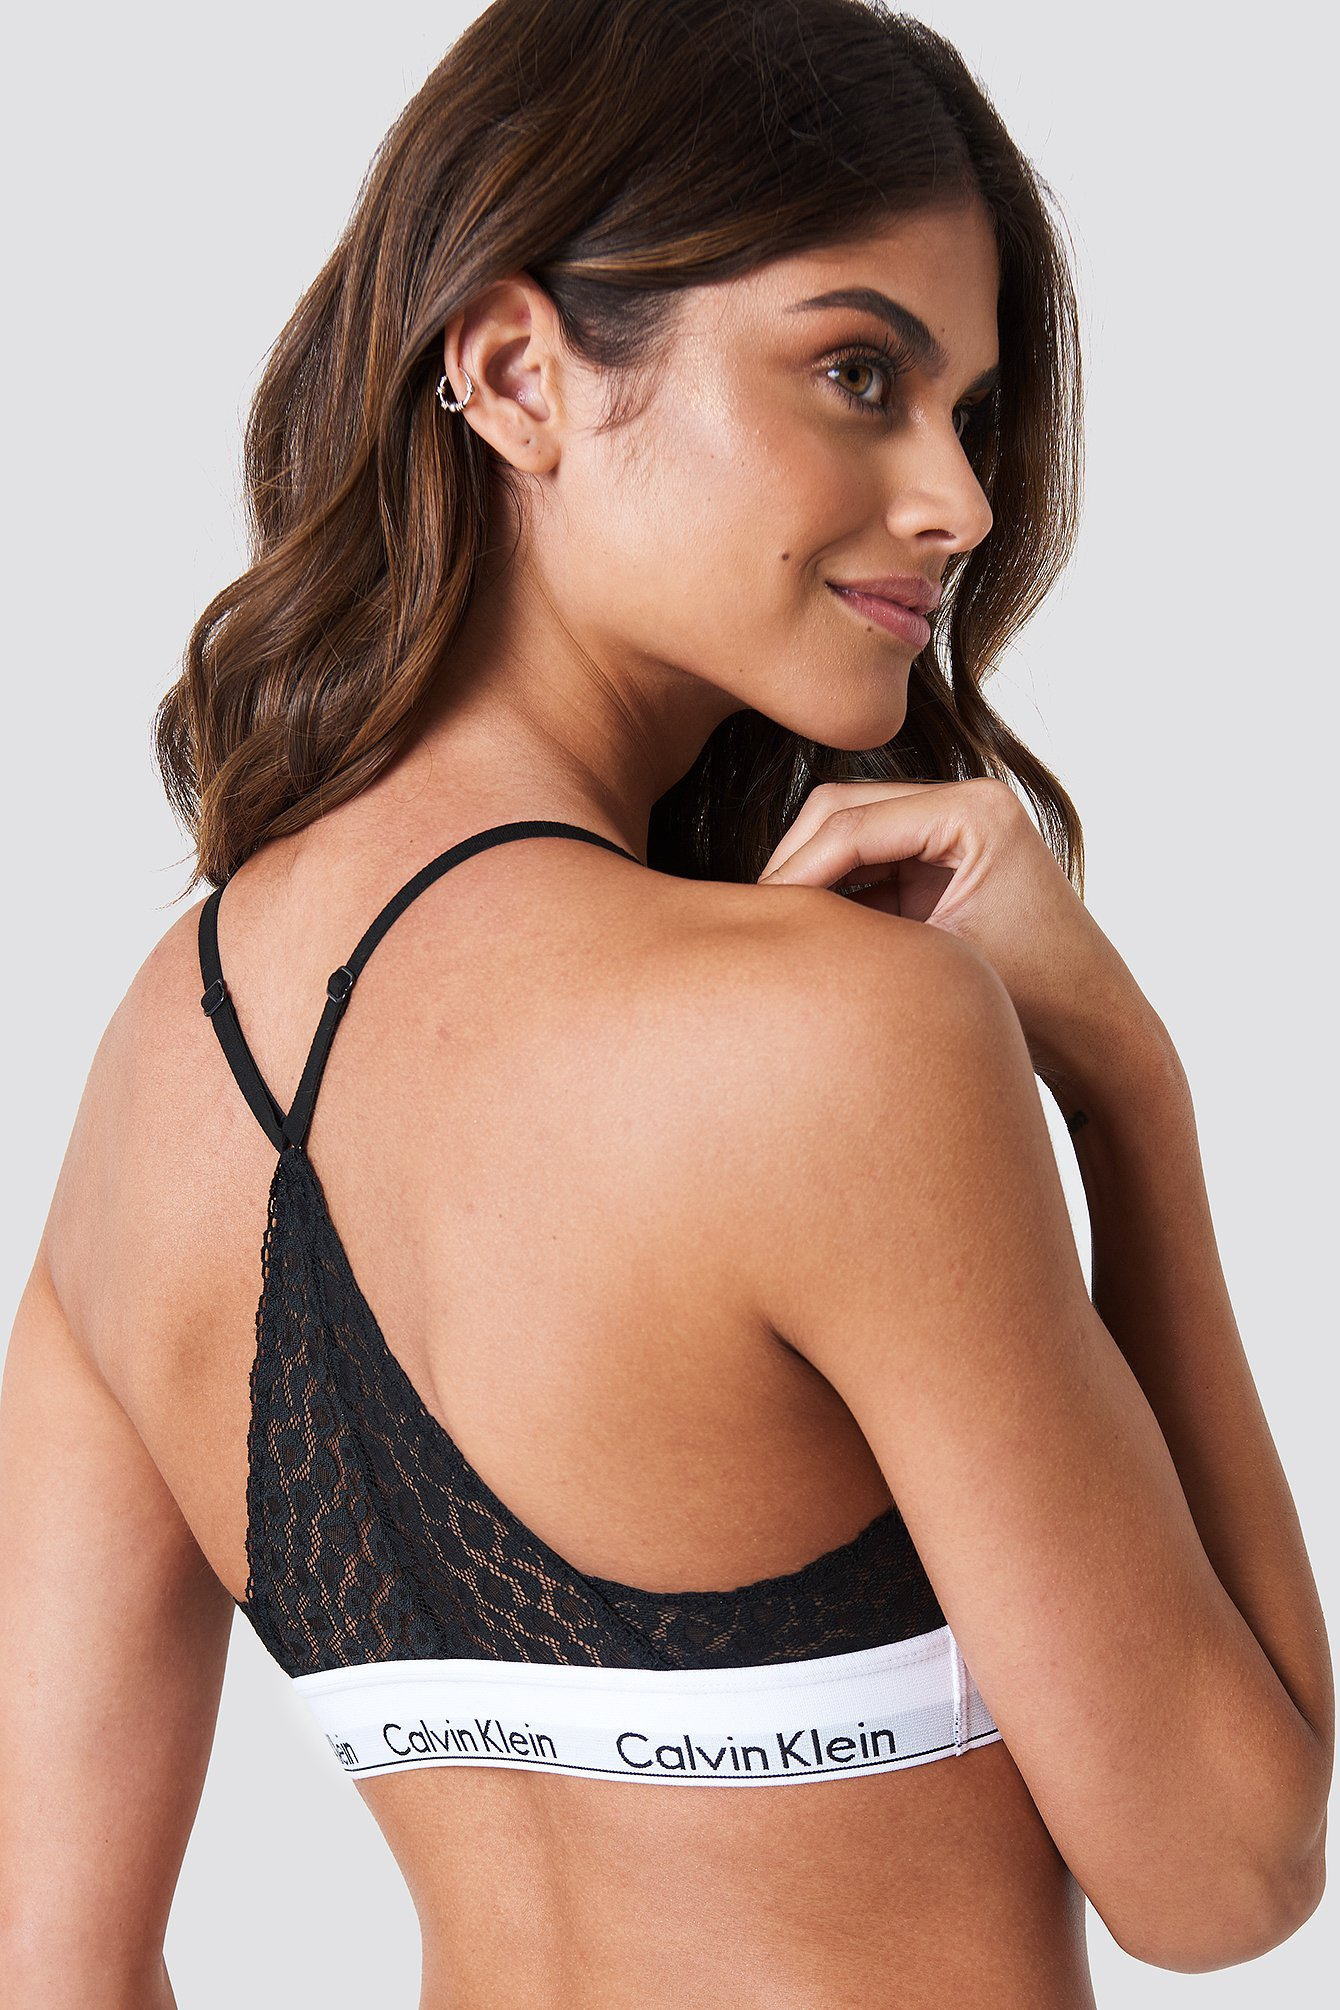 Calvin Klein Triangle Lace Bra - Black